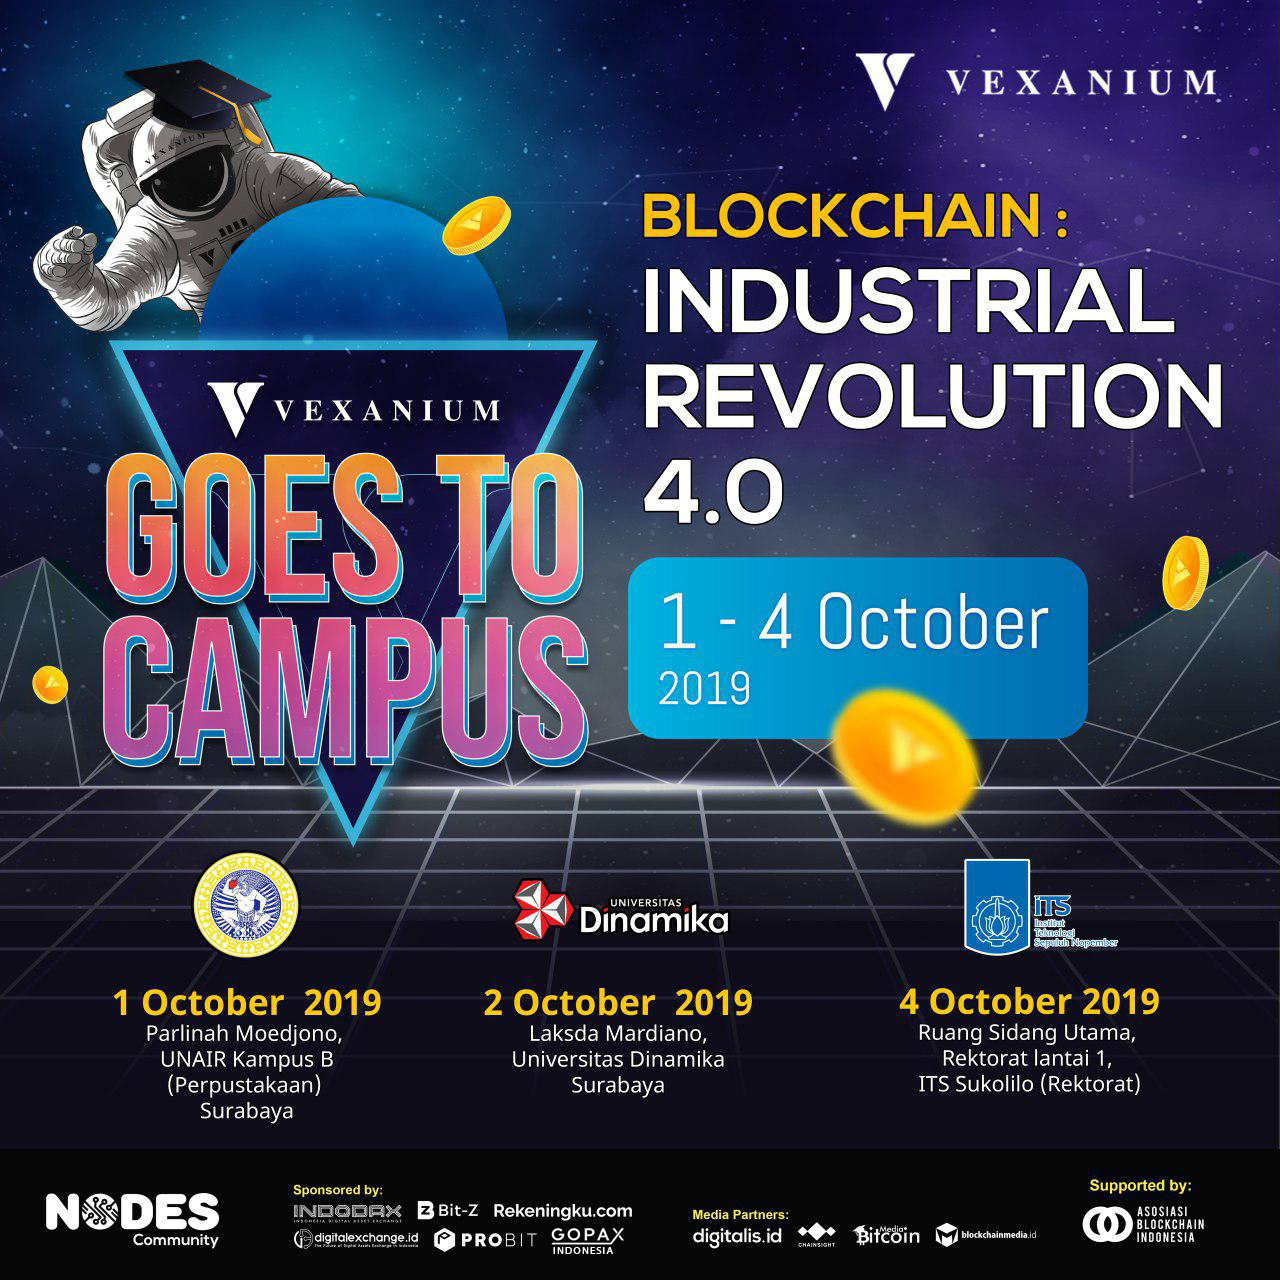 Vexanium Goes to Campus 2019 – Surabaya